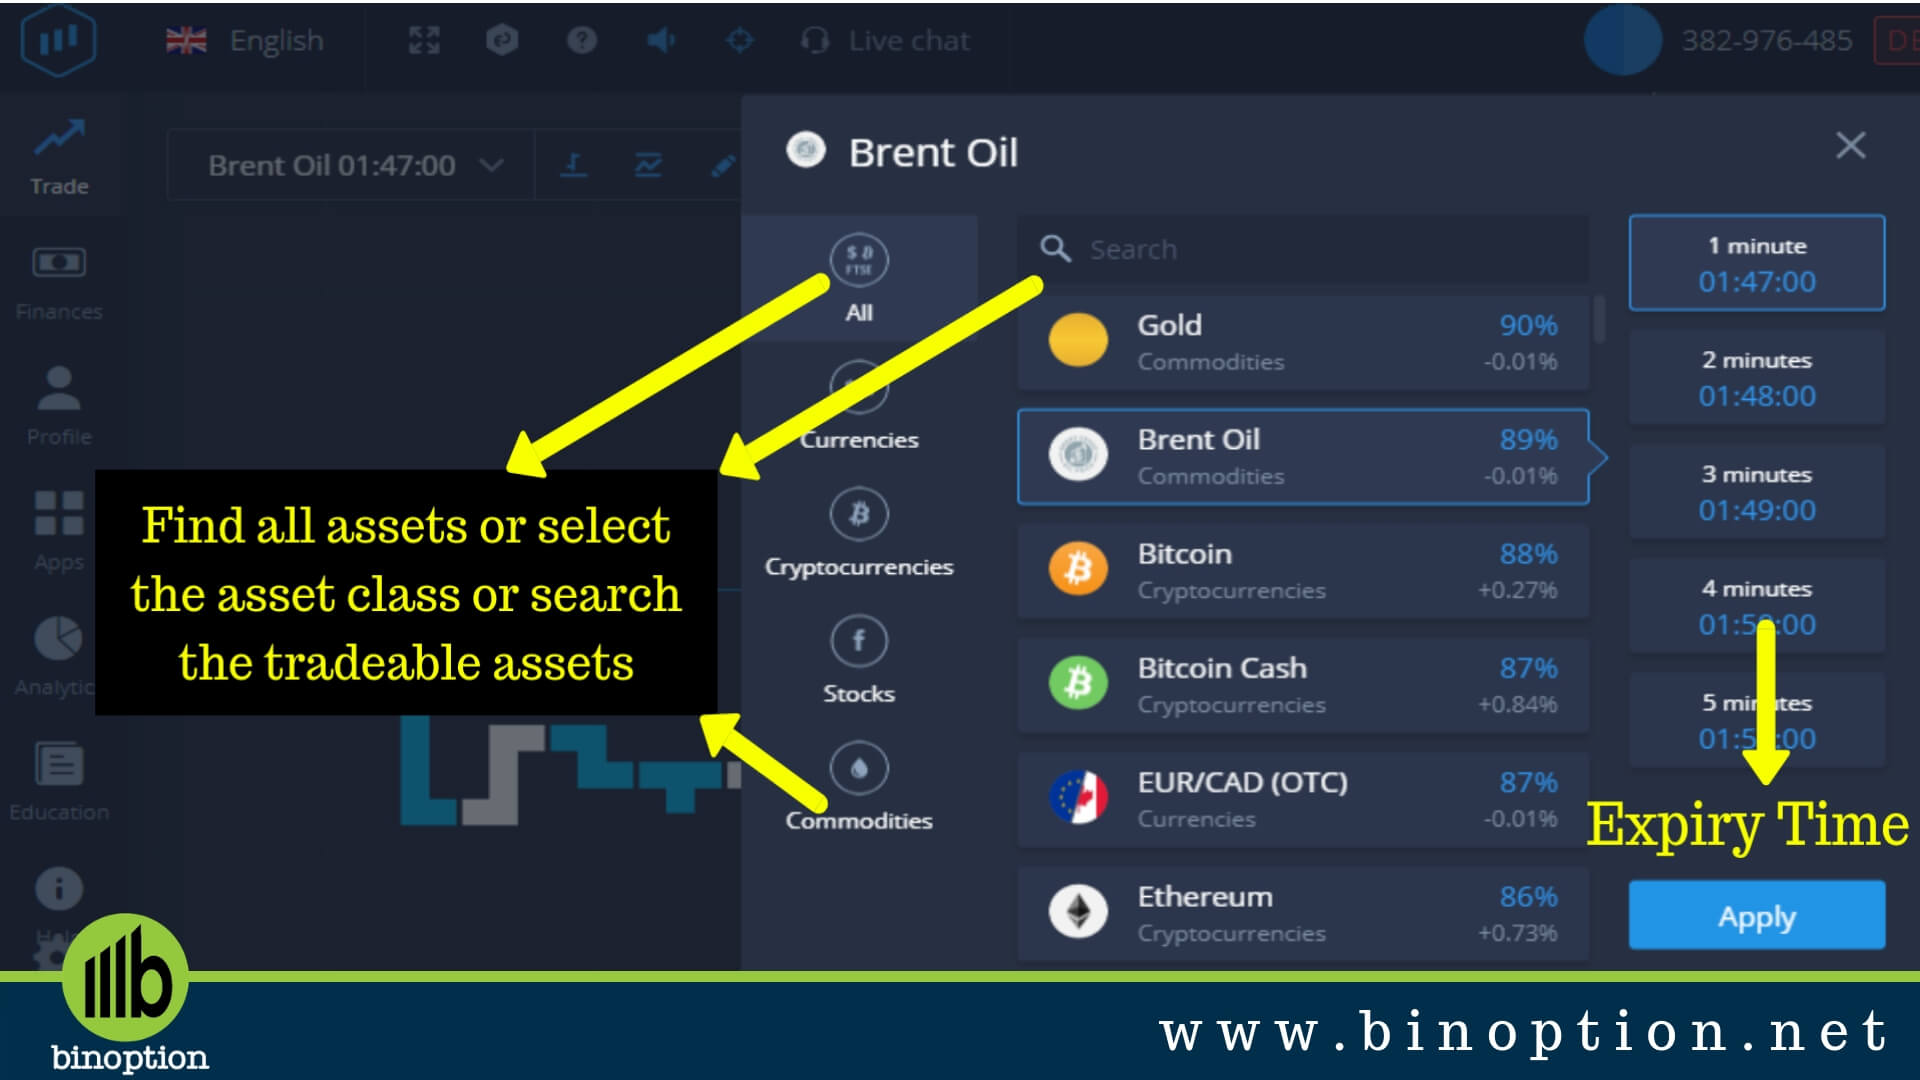 Expert Option Review: Is Expert Option App Scam Or Not - Binoption